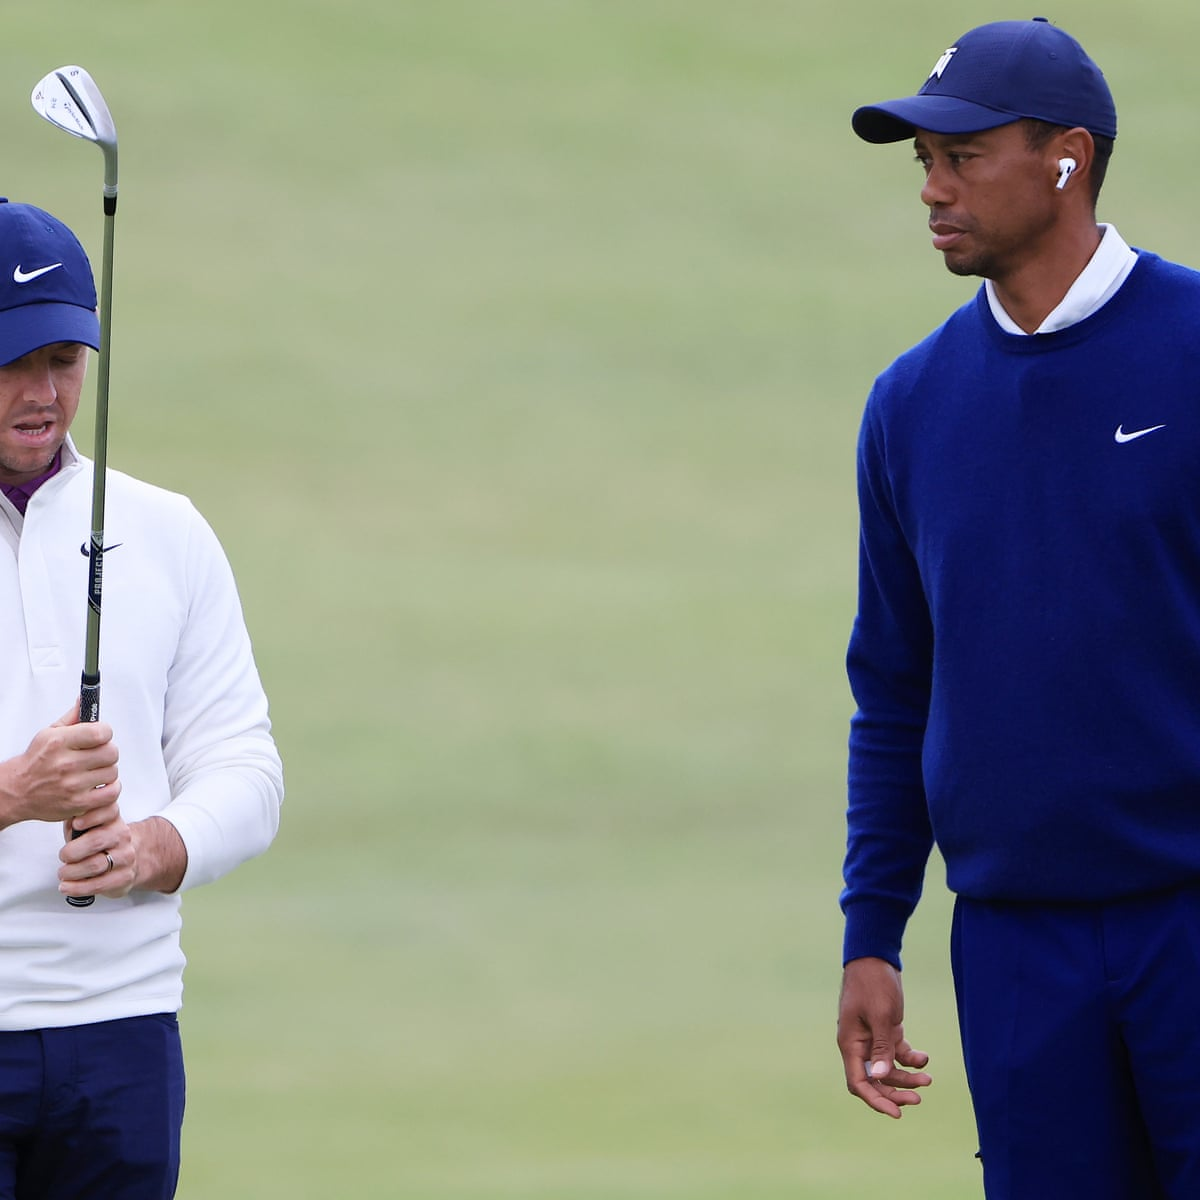 Mcilroy Says Woods Can Still Affect Golf In A Great Way If Car Crash Ends Career Tiger Woods The Guardian